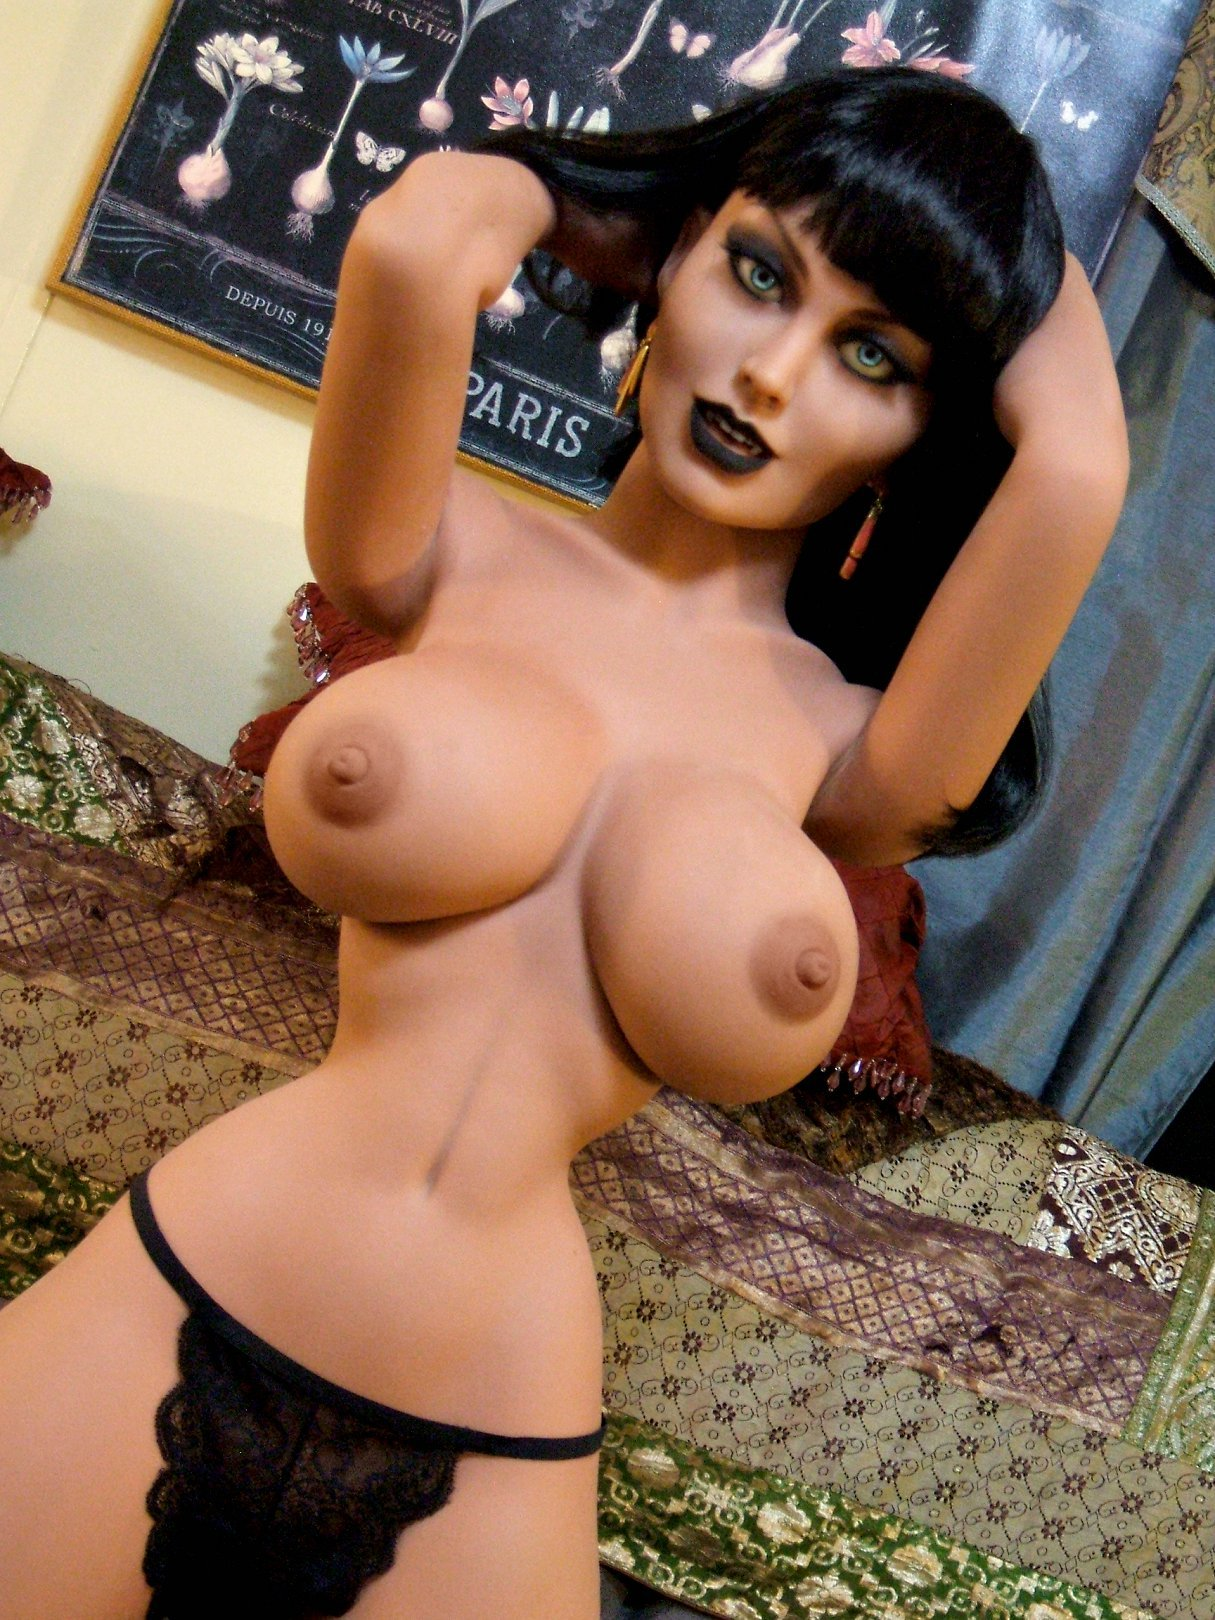 joanna 148cm black hair fantasy medium tits tpe yl anime small sex doll(3)